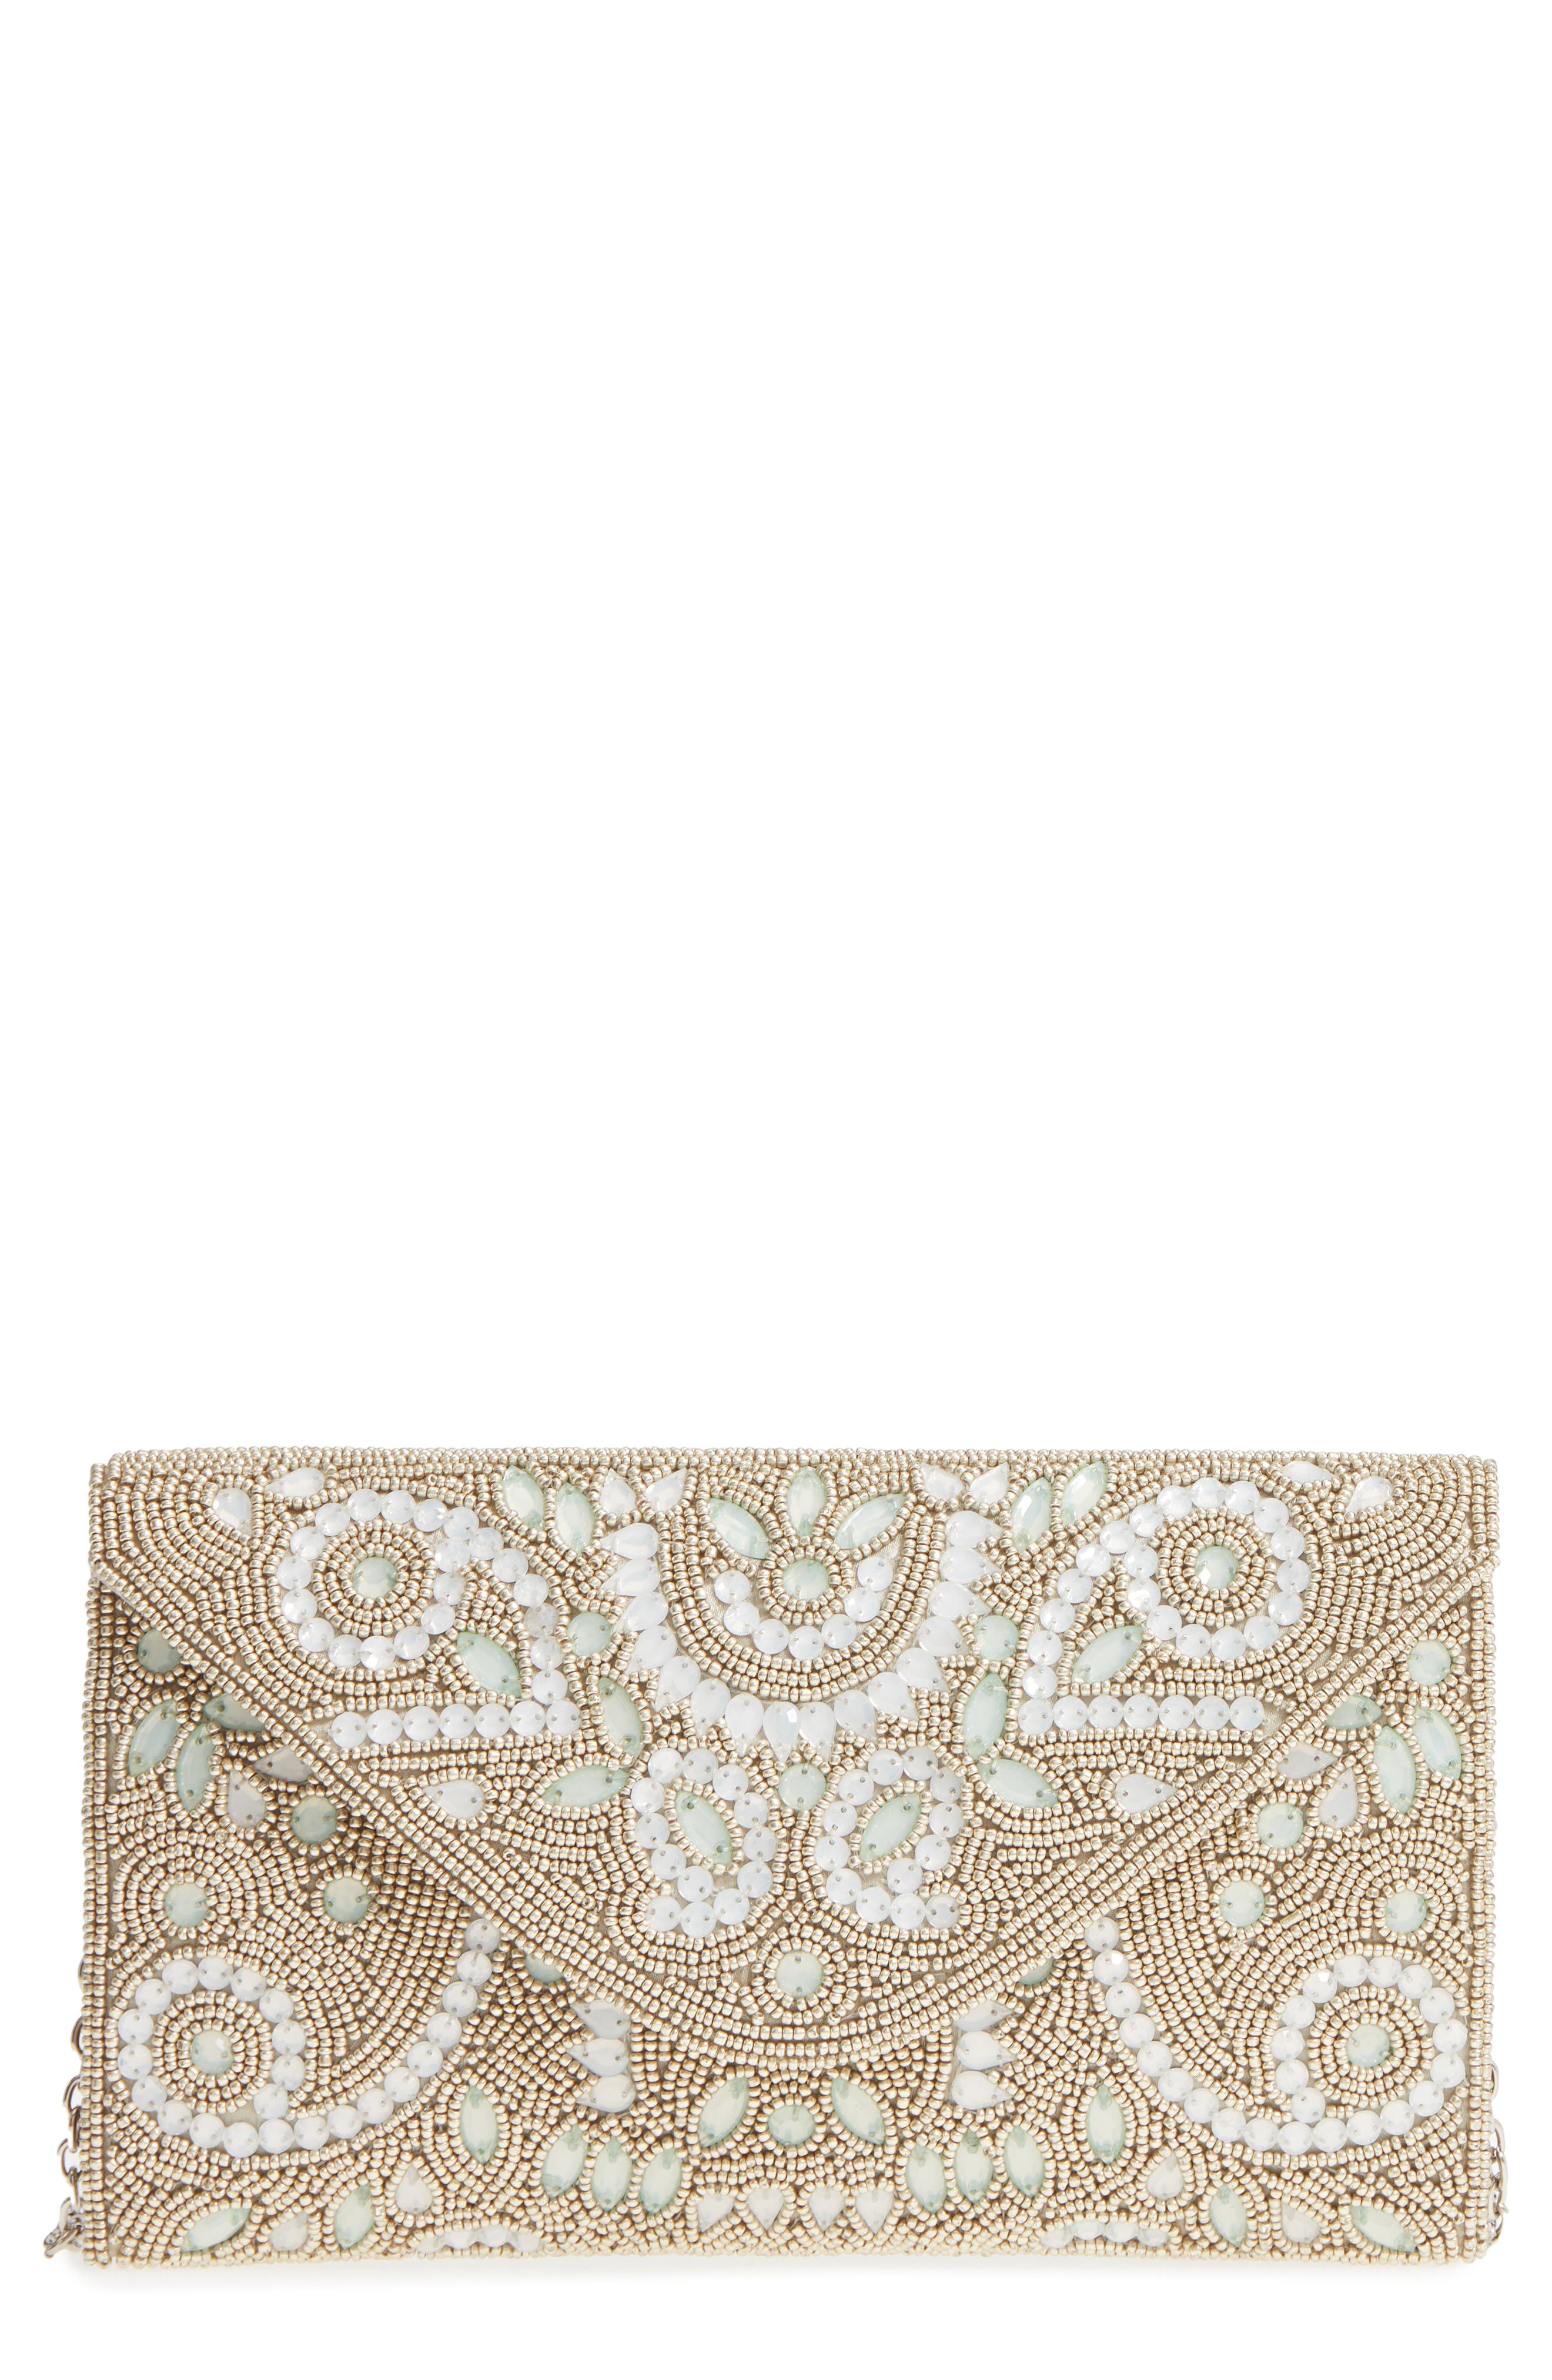 Nordstrom Embellished Envelope Clutch